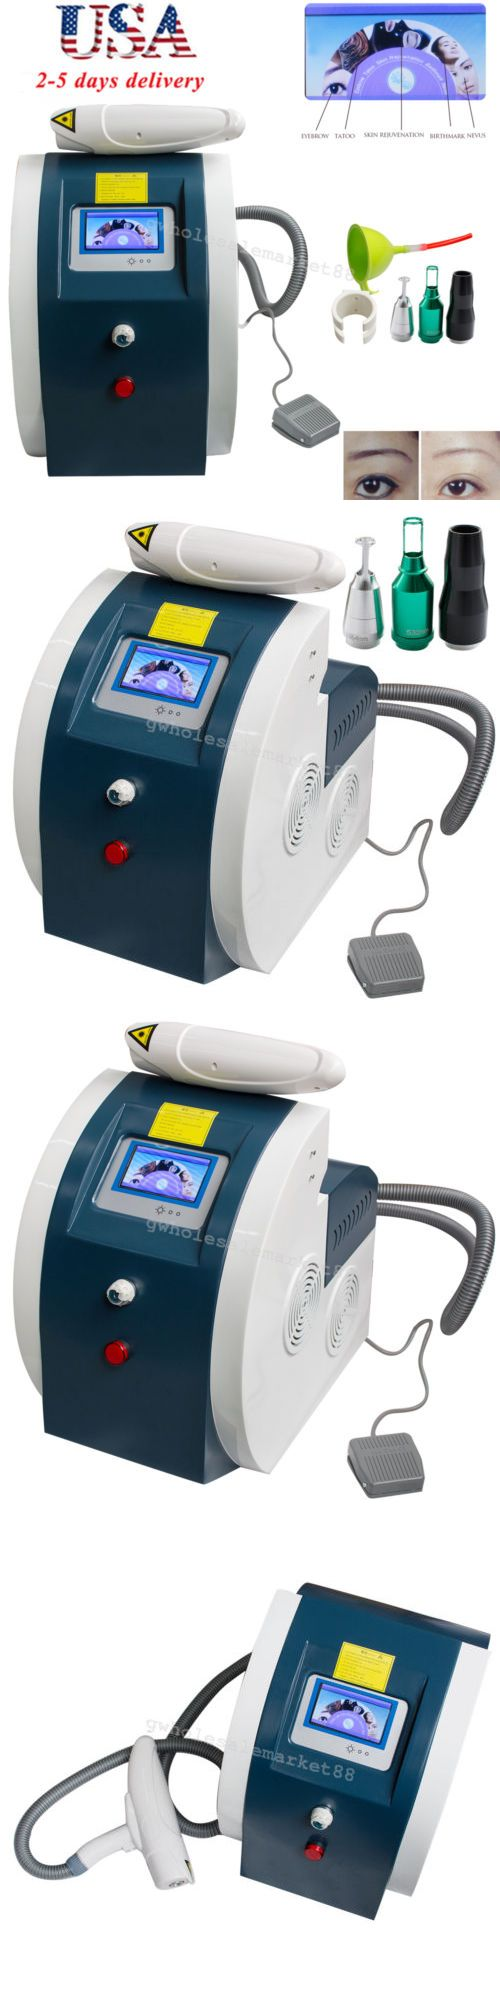 Tattoo Removal Machines: Tattoo Removal Machine Eyebrow Pigment Removal Eyes Beauty Machine Us 2-5D Ship -> BUY IT NOW ONLY: $1269.41 on eBay!